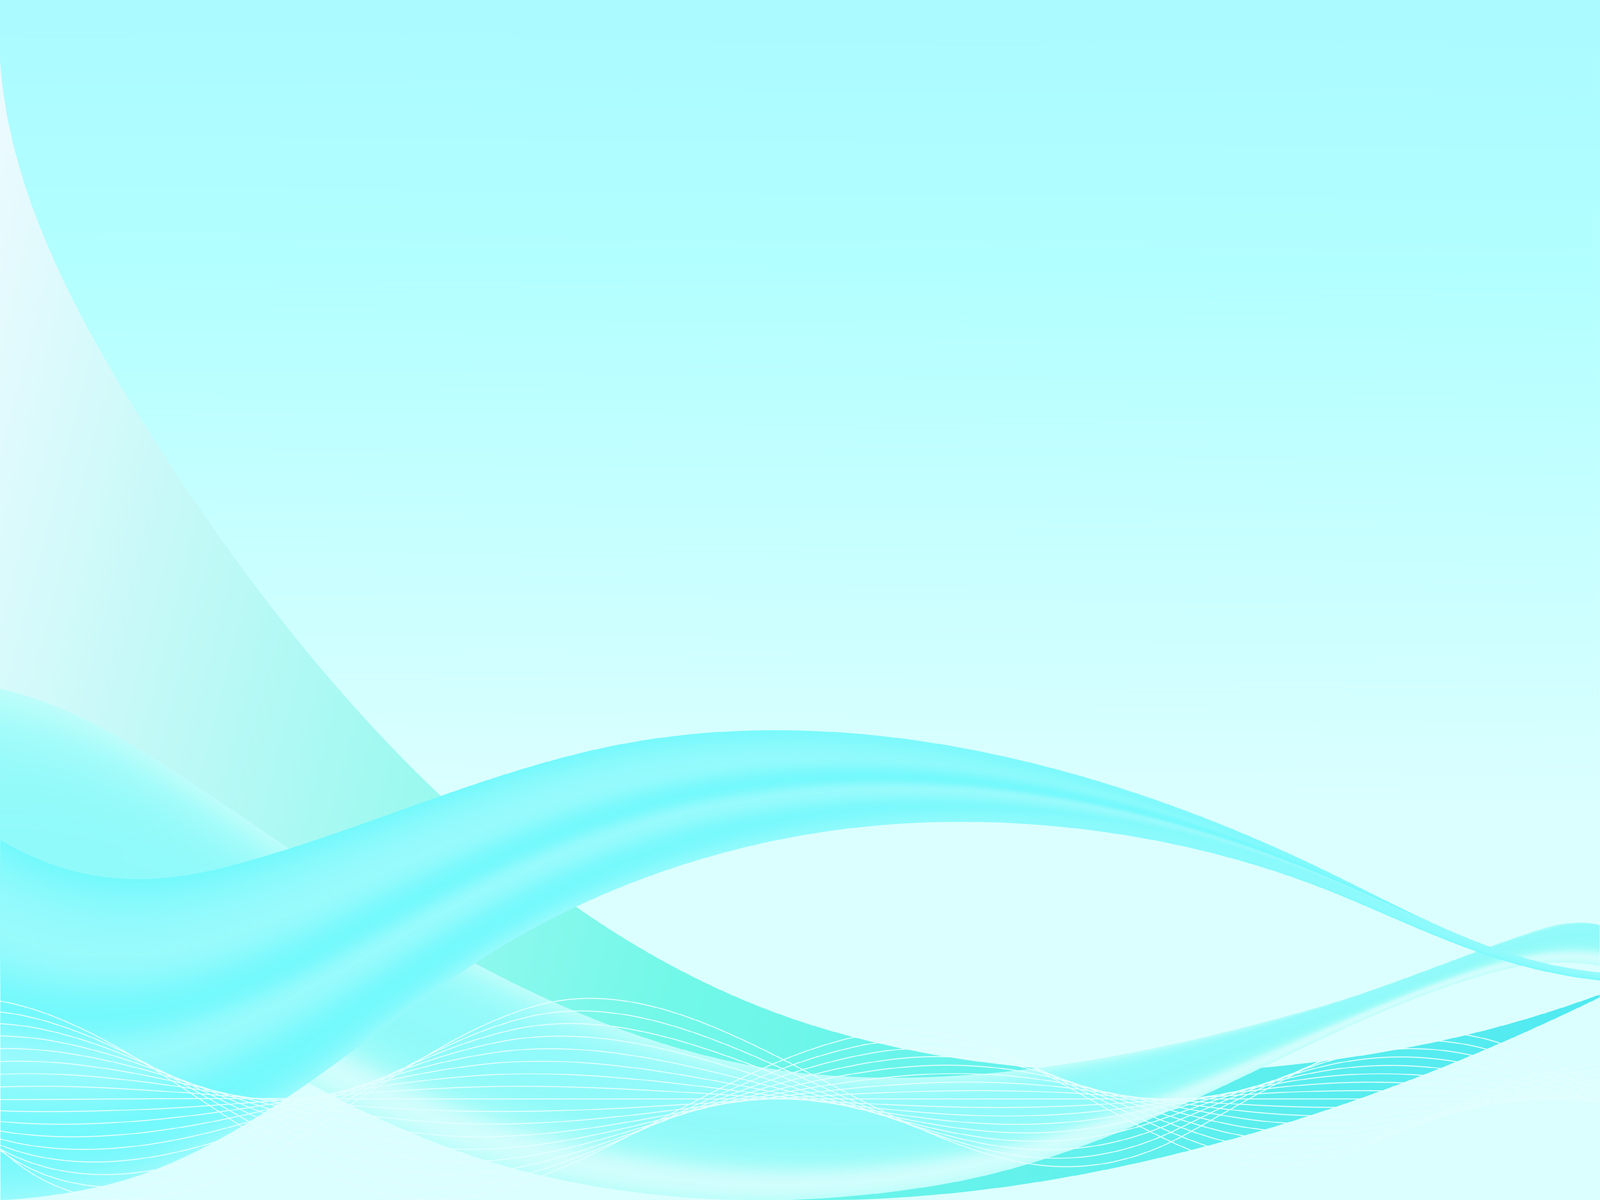 Abstract Curves Blue Backgrounds